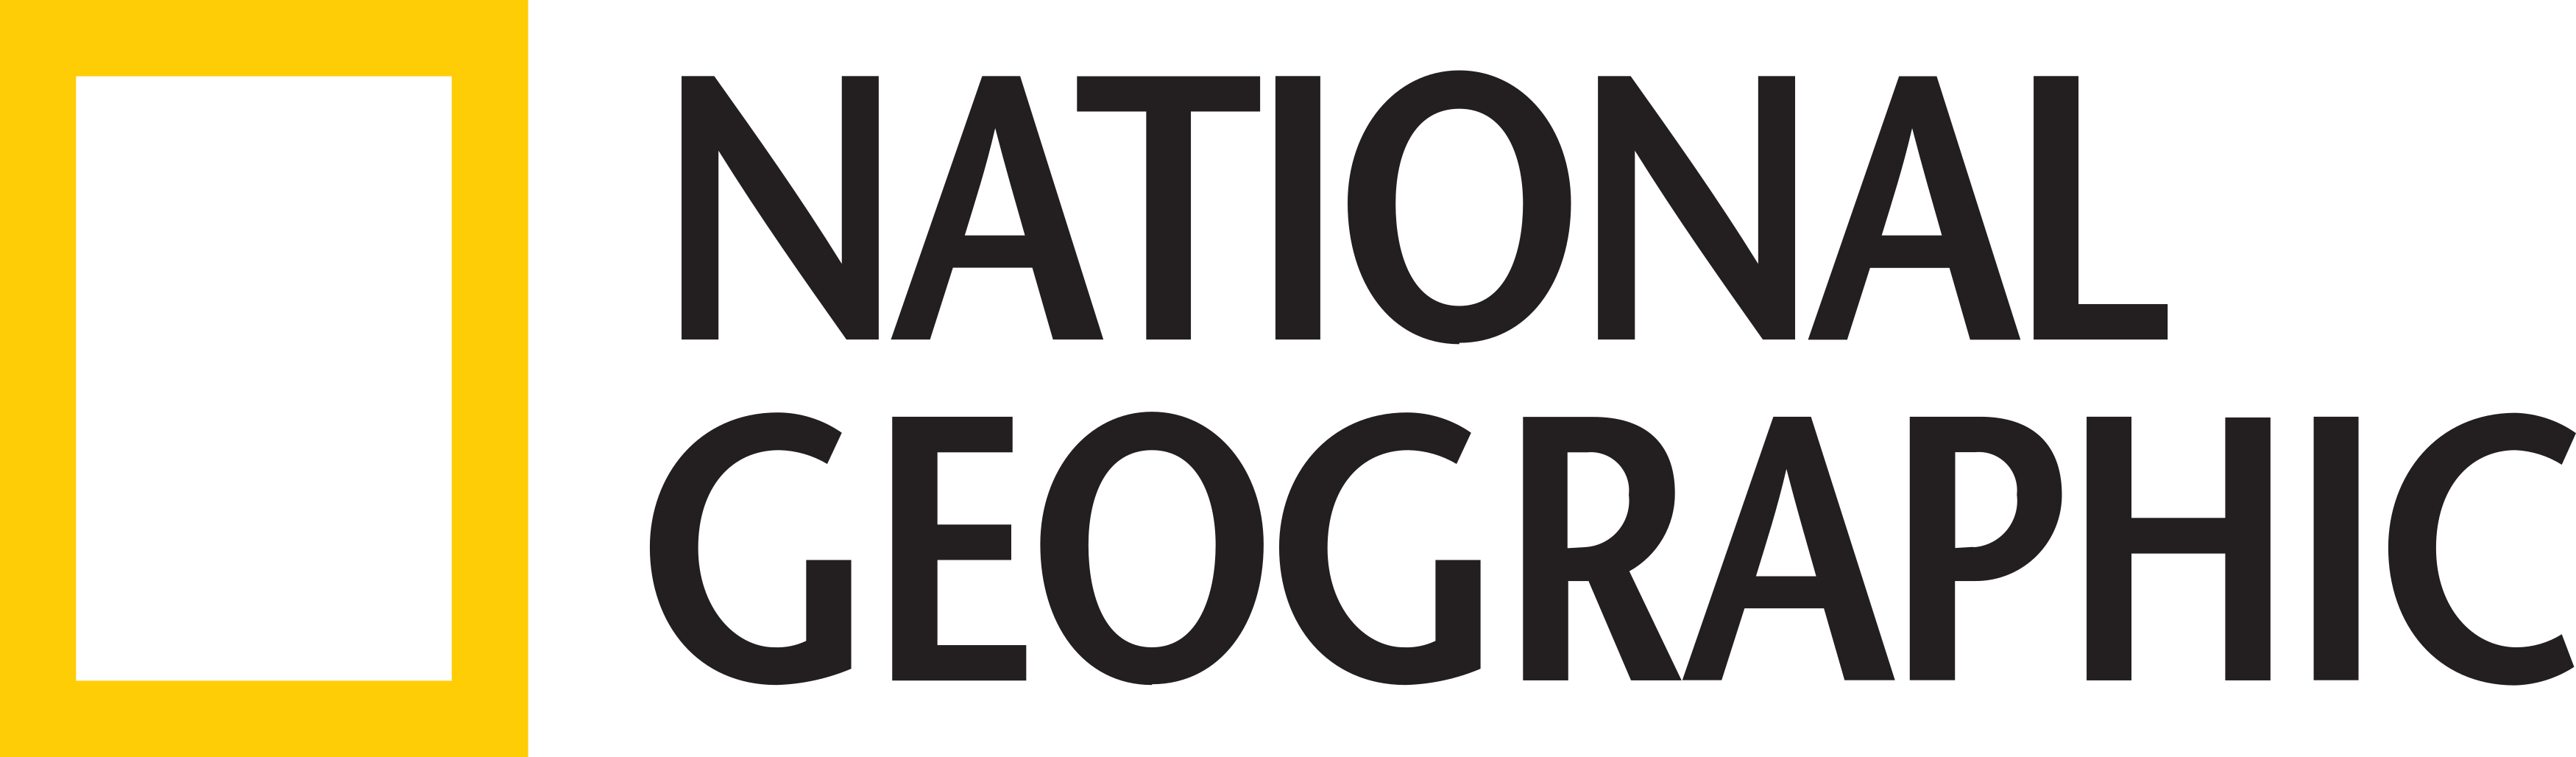 national geographic logo - National Geographic Logo